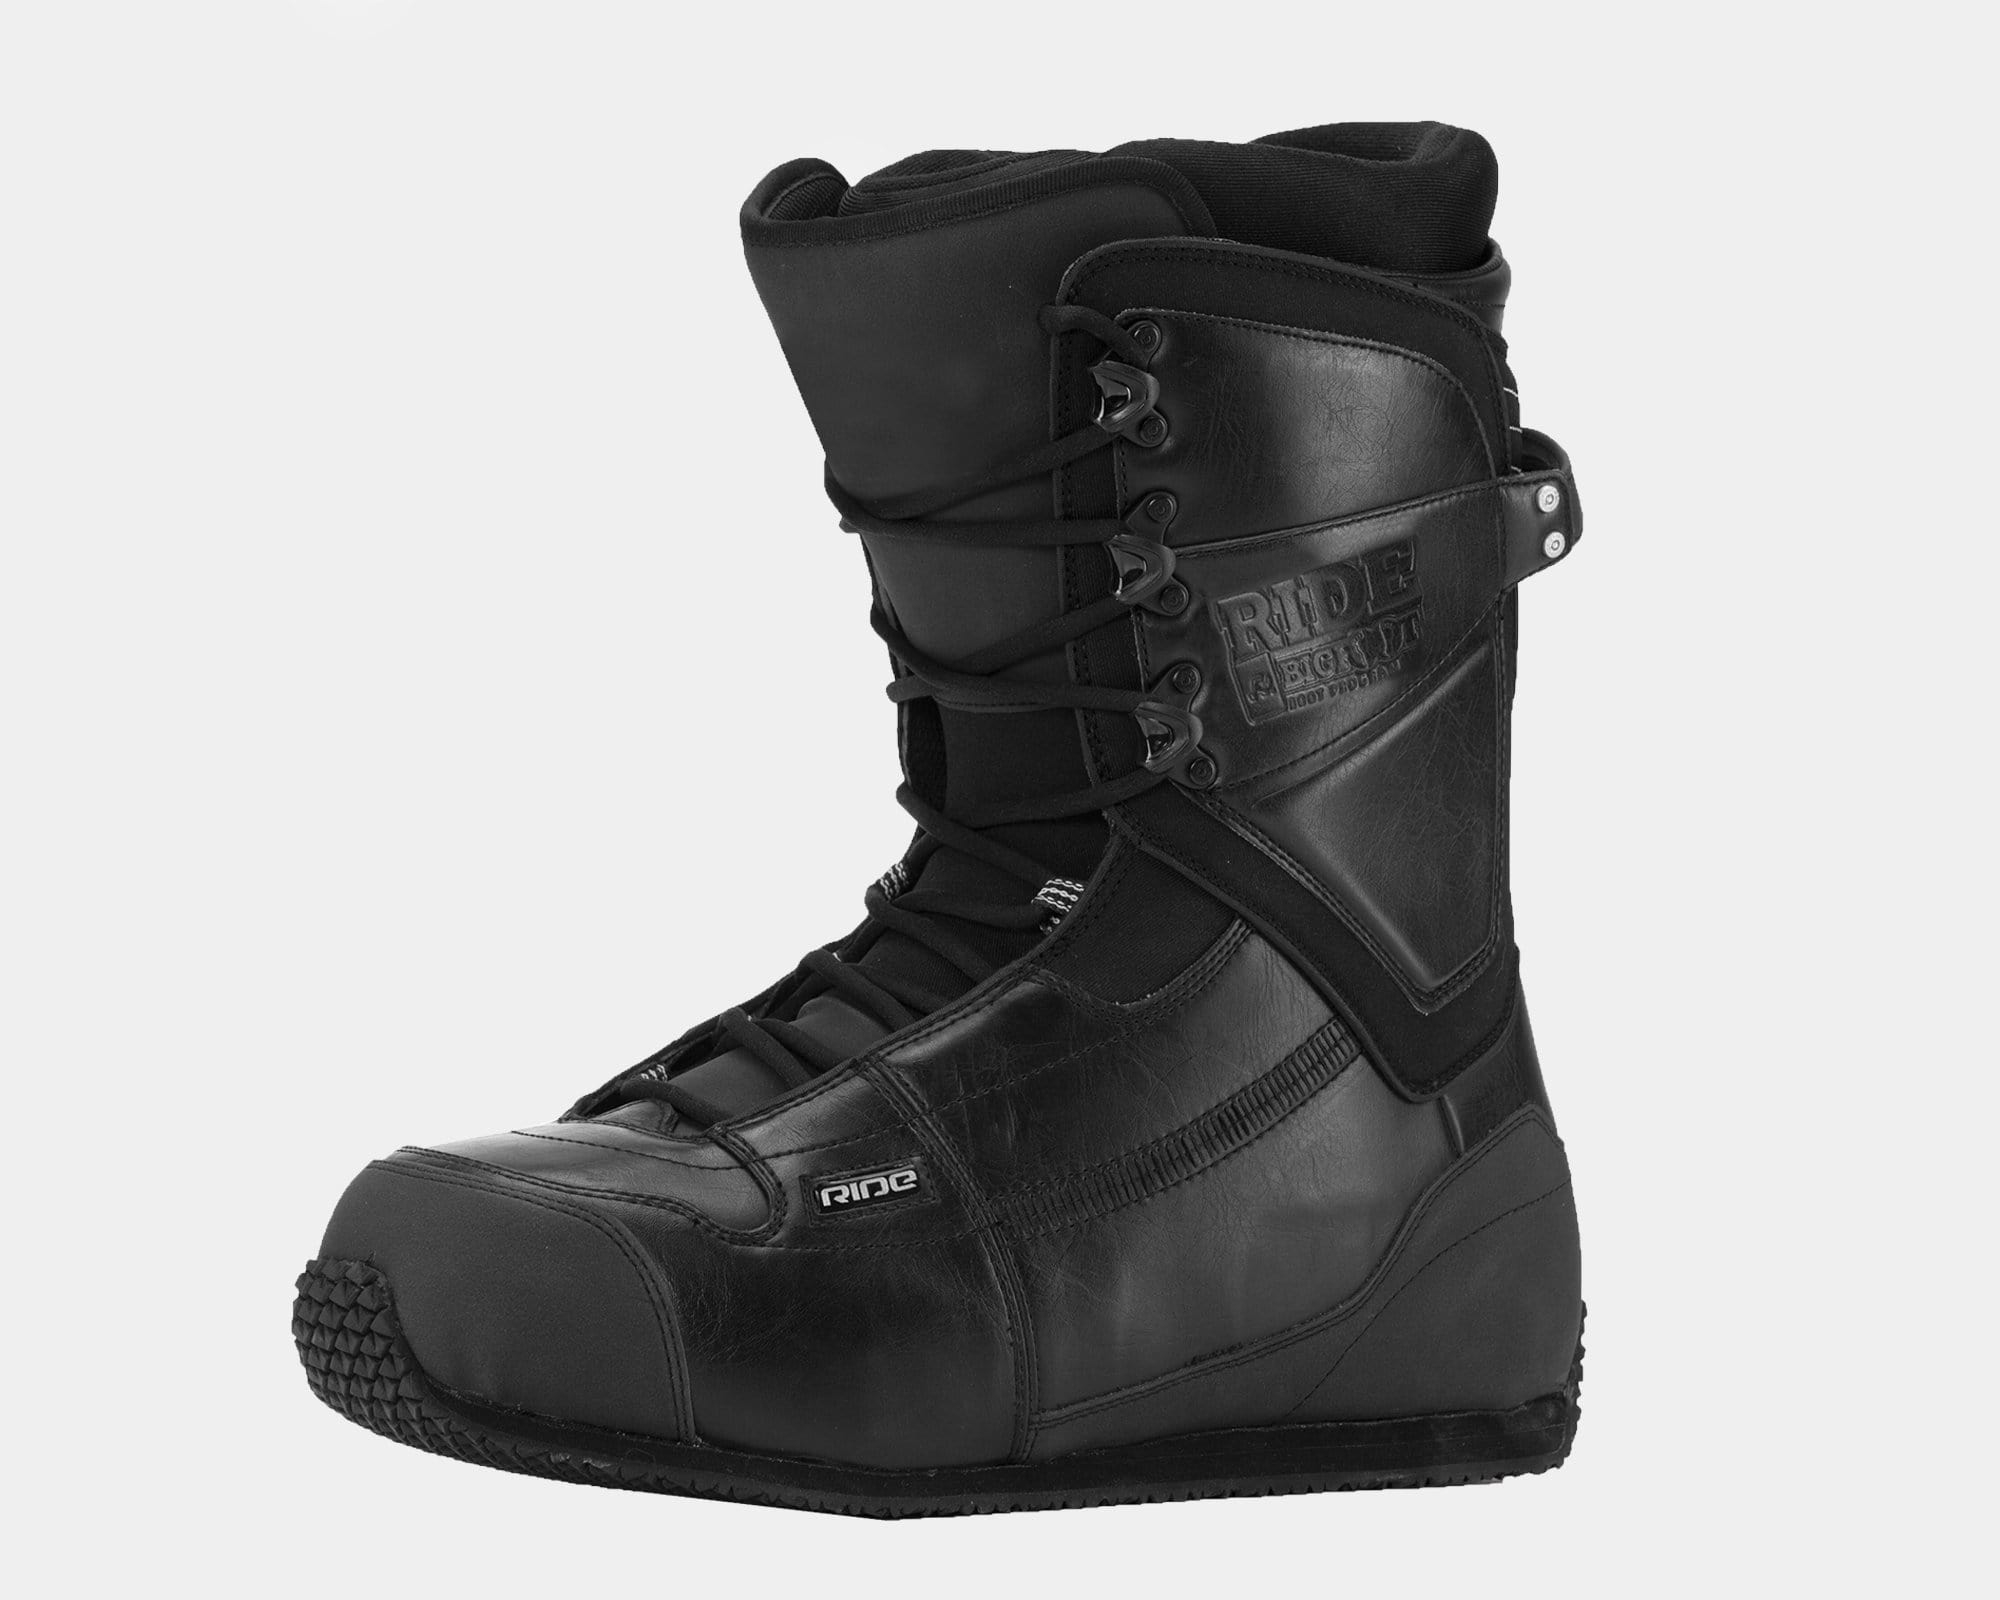 Ride BigFoot Snowboard Boots - Large Sizes on bigfoot skateboard, bigfoot atv, bigfoot cruiser, bigfoot fifth wheel, bigfoot car, bigfoot power wheels,